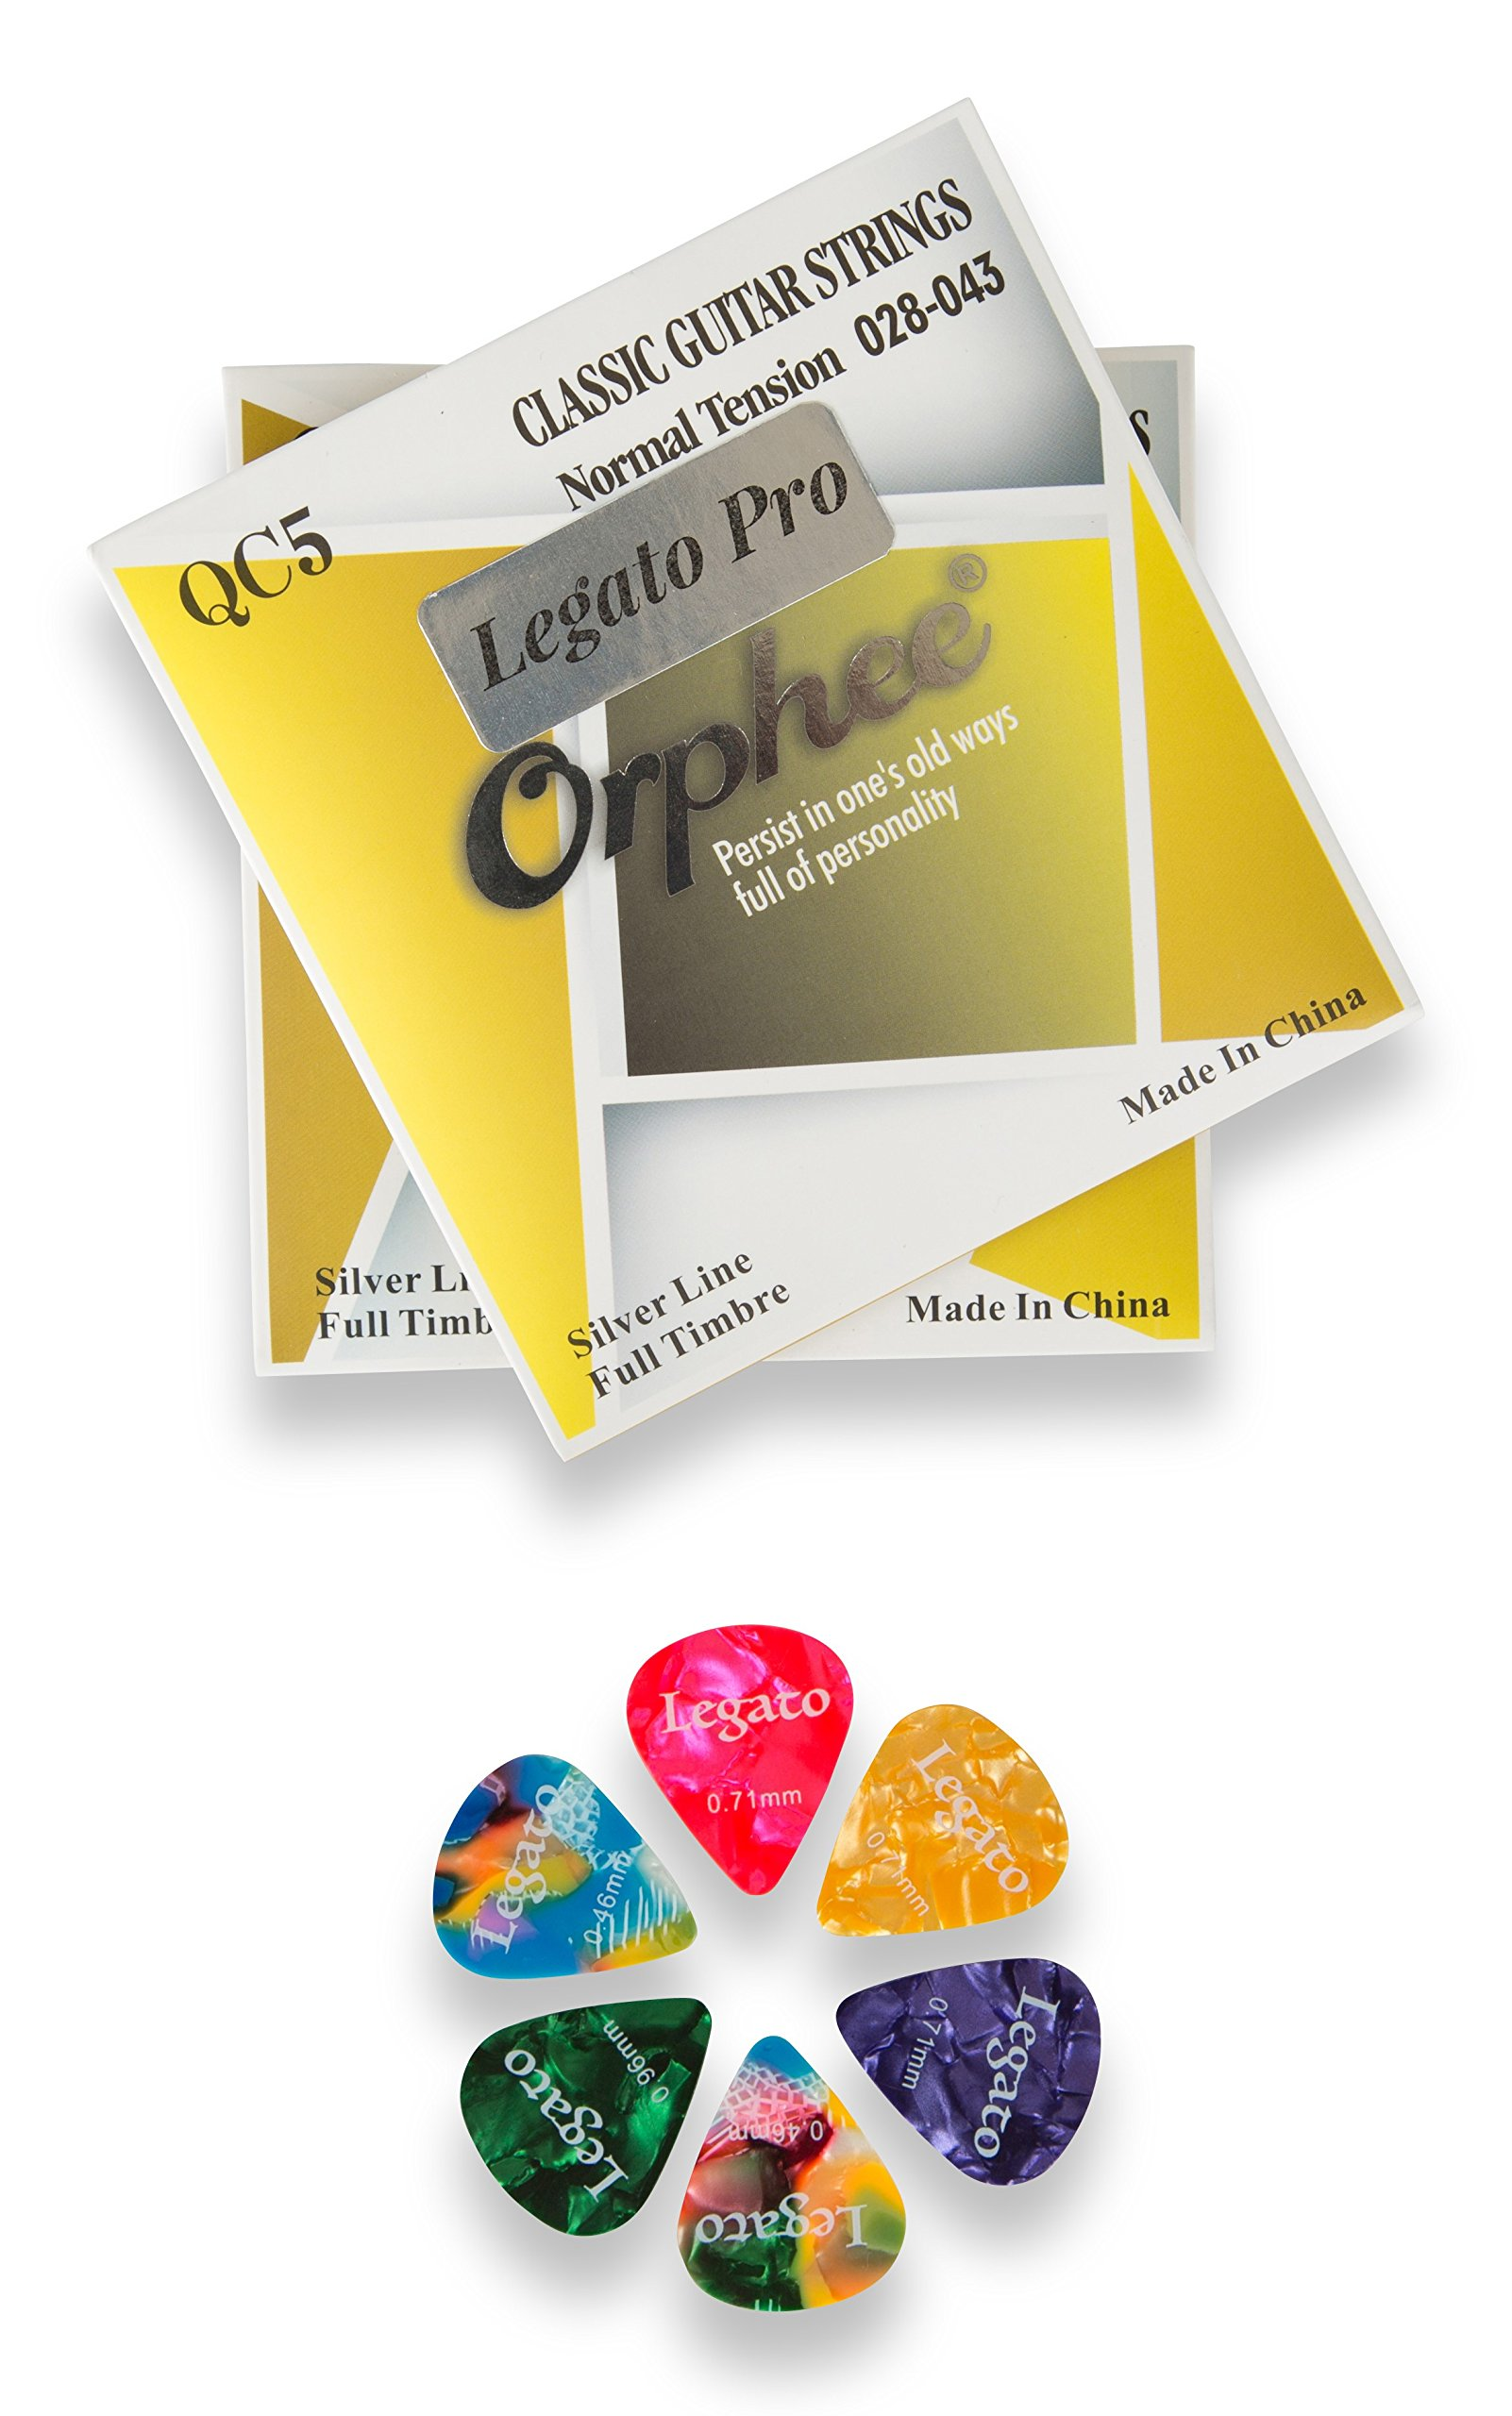 Nylon Classical Acoustic Guitar Strings for Beginners to Pro Level Normal Tension (2 Pack) Bundle